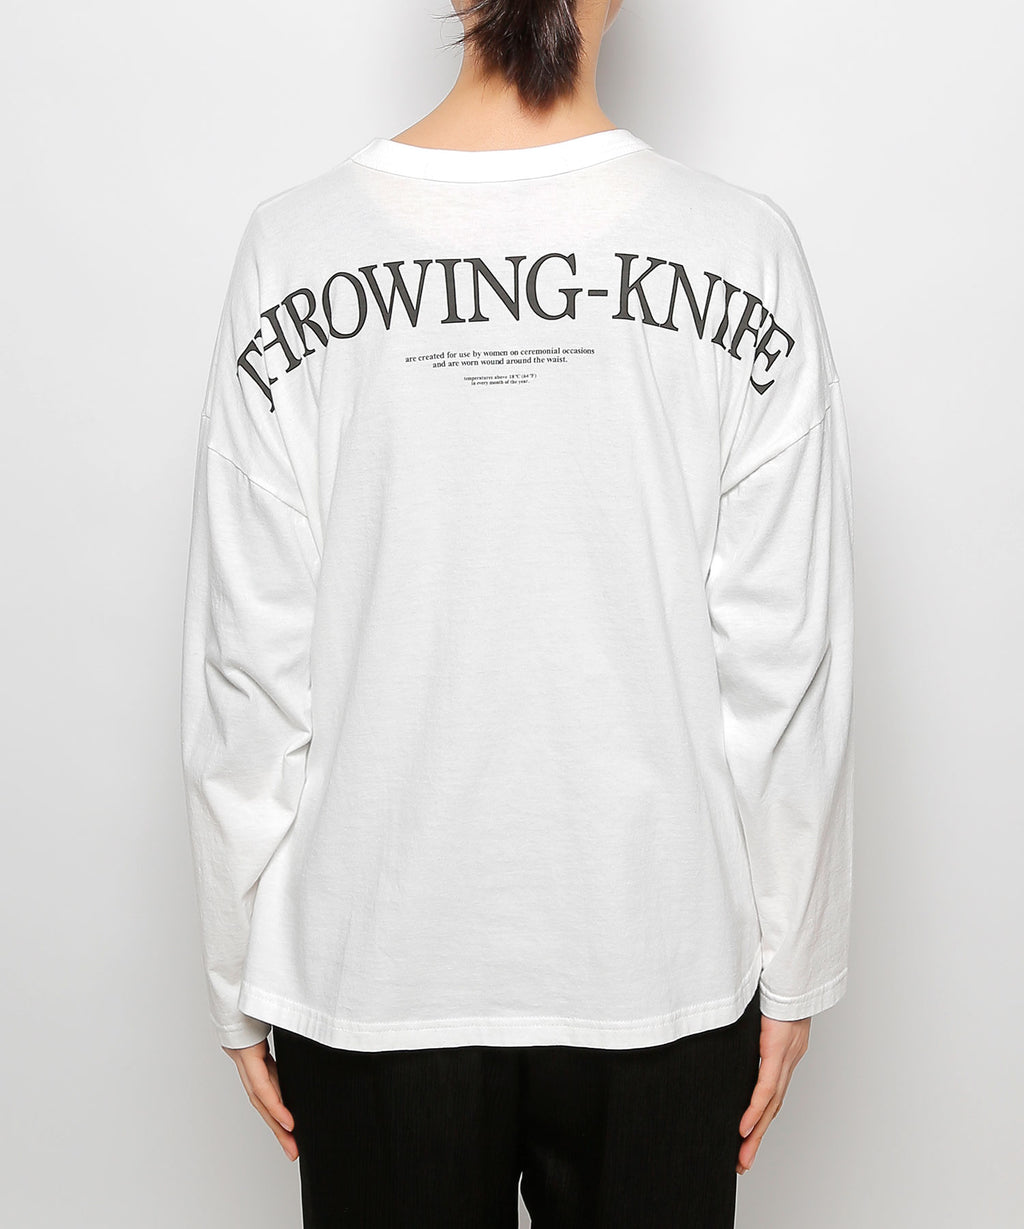 """THROWING-KNIFE""long sleeve t-shirts"